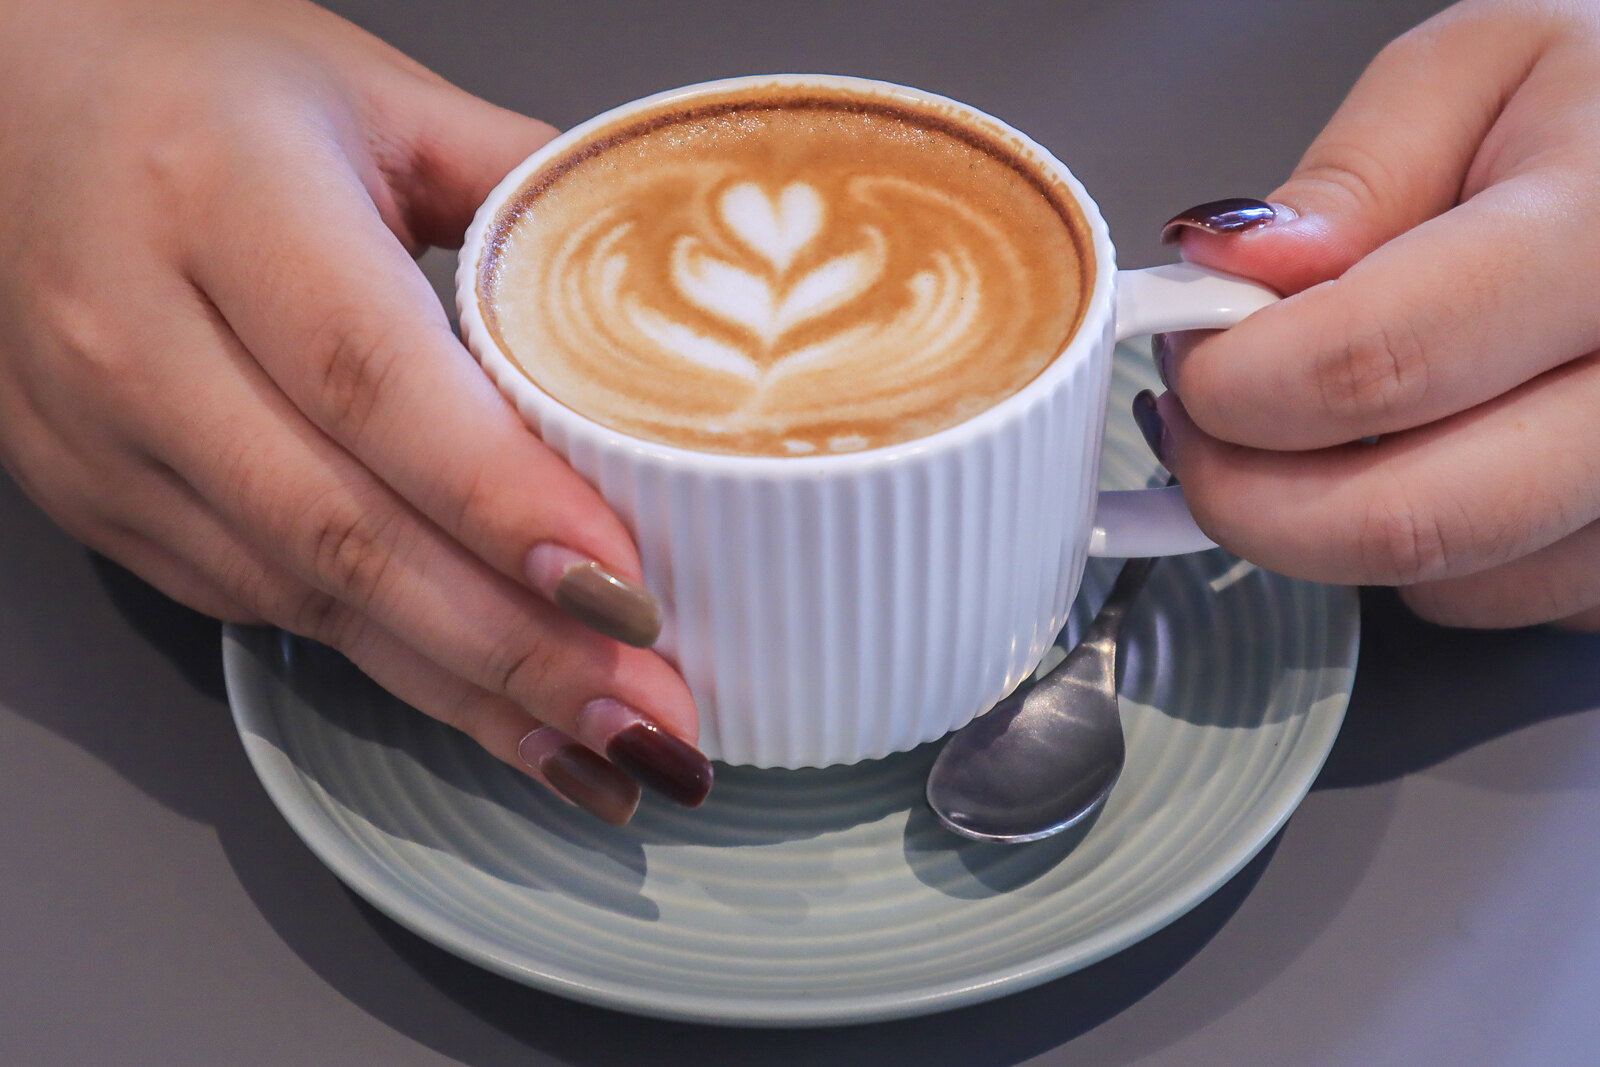 gather hands holding cup 2